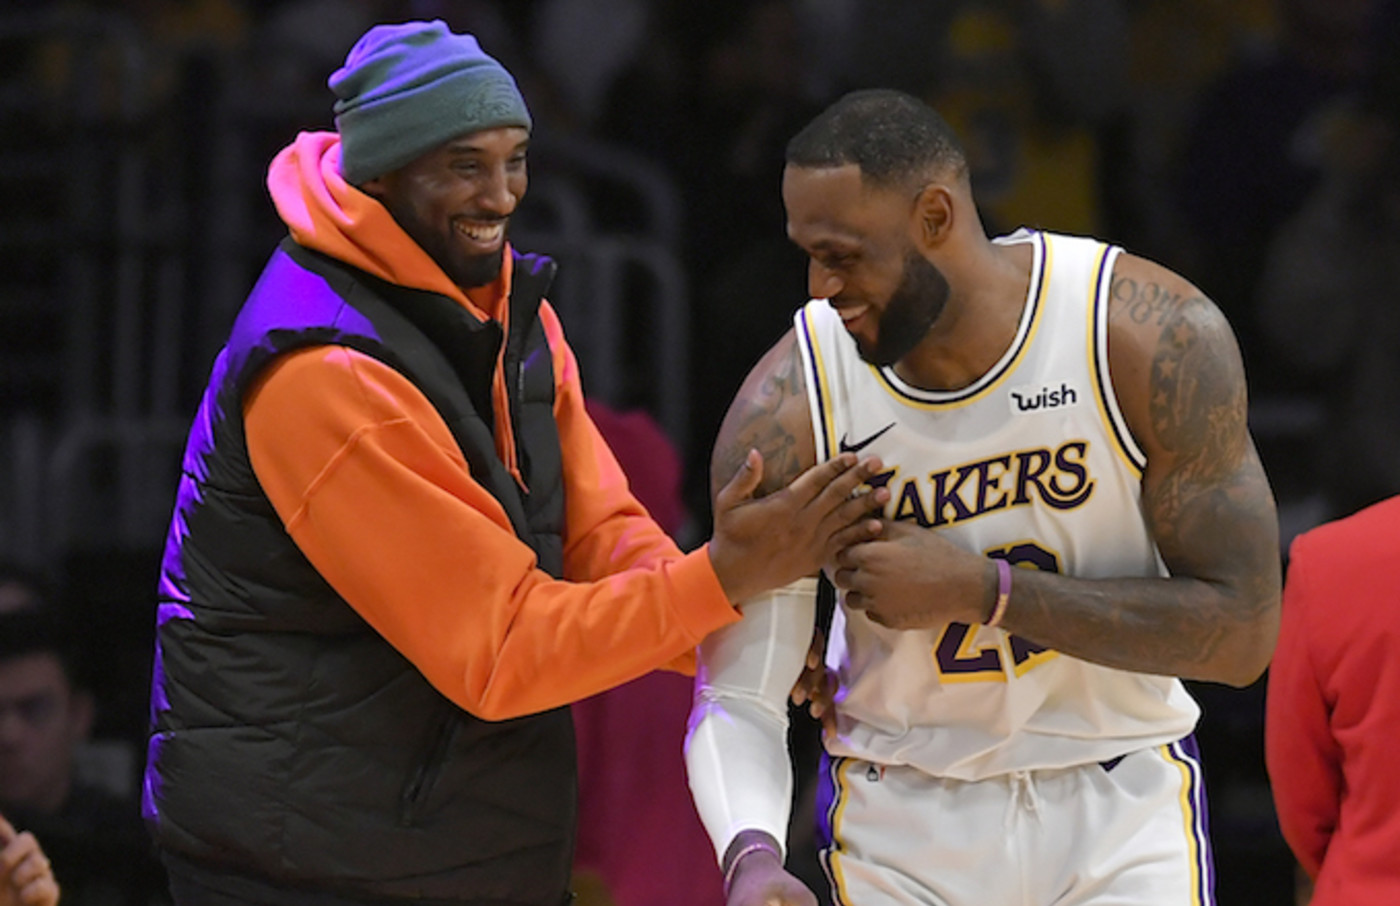 LeBron James has a moment on the sideline with former Laker Kobe Bryant.